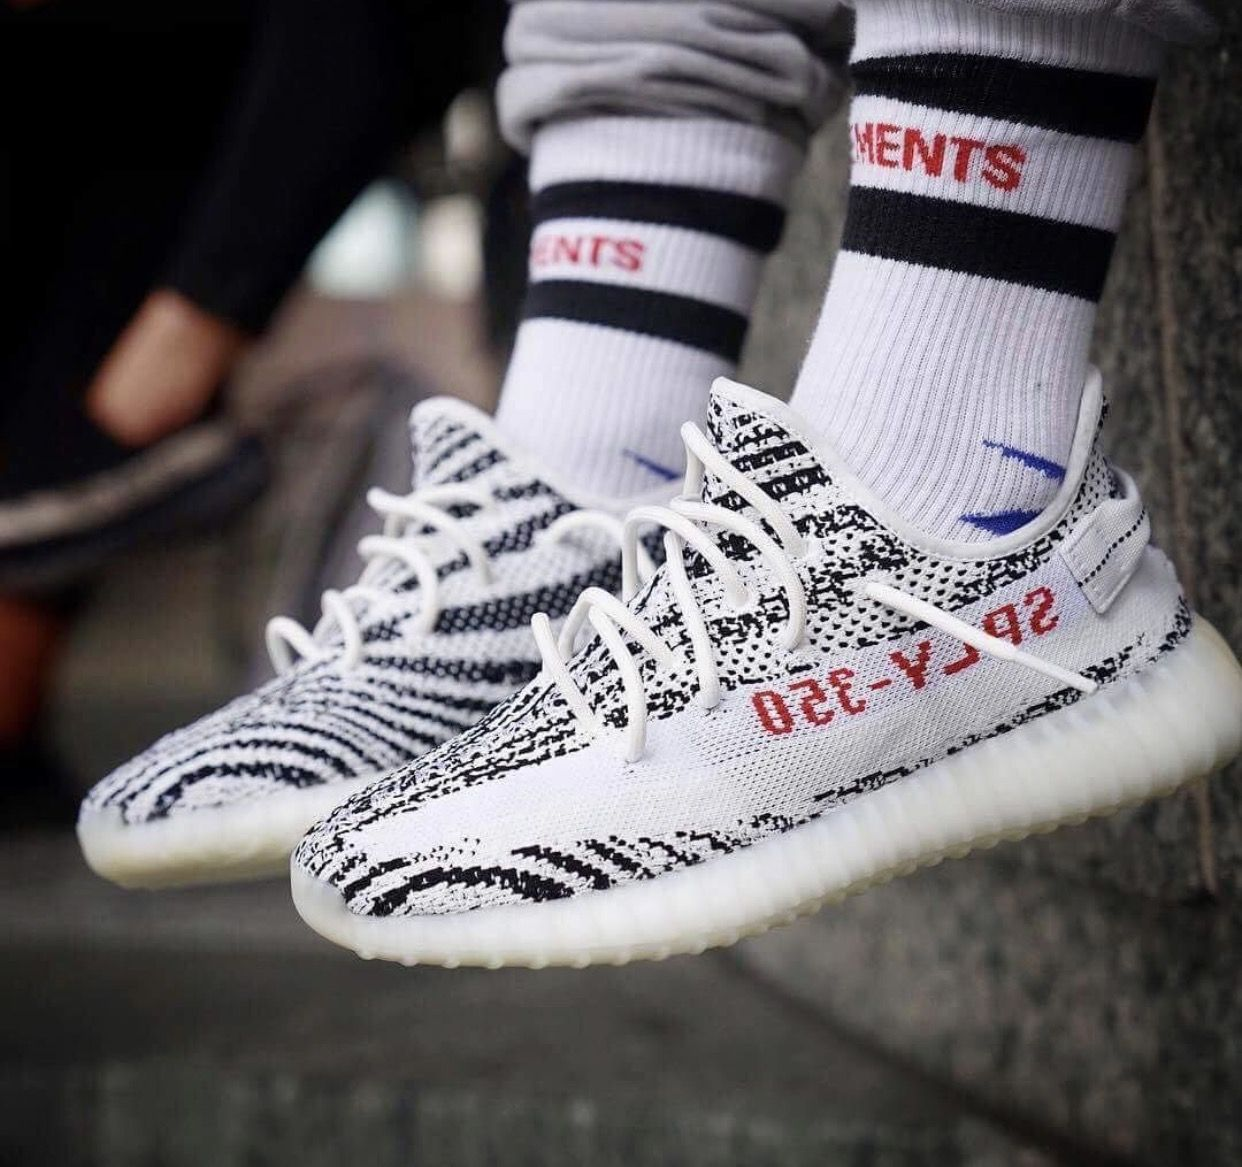 wavemaster adidas shoes yeezy zebras 350v2 socks 568081